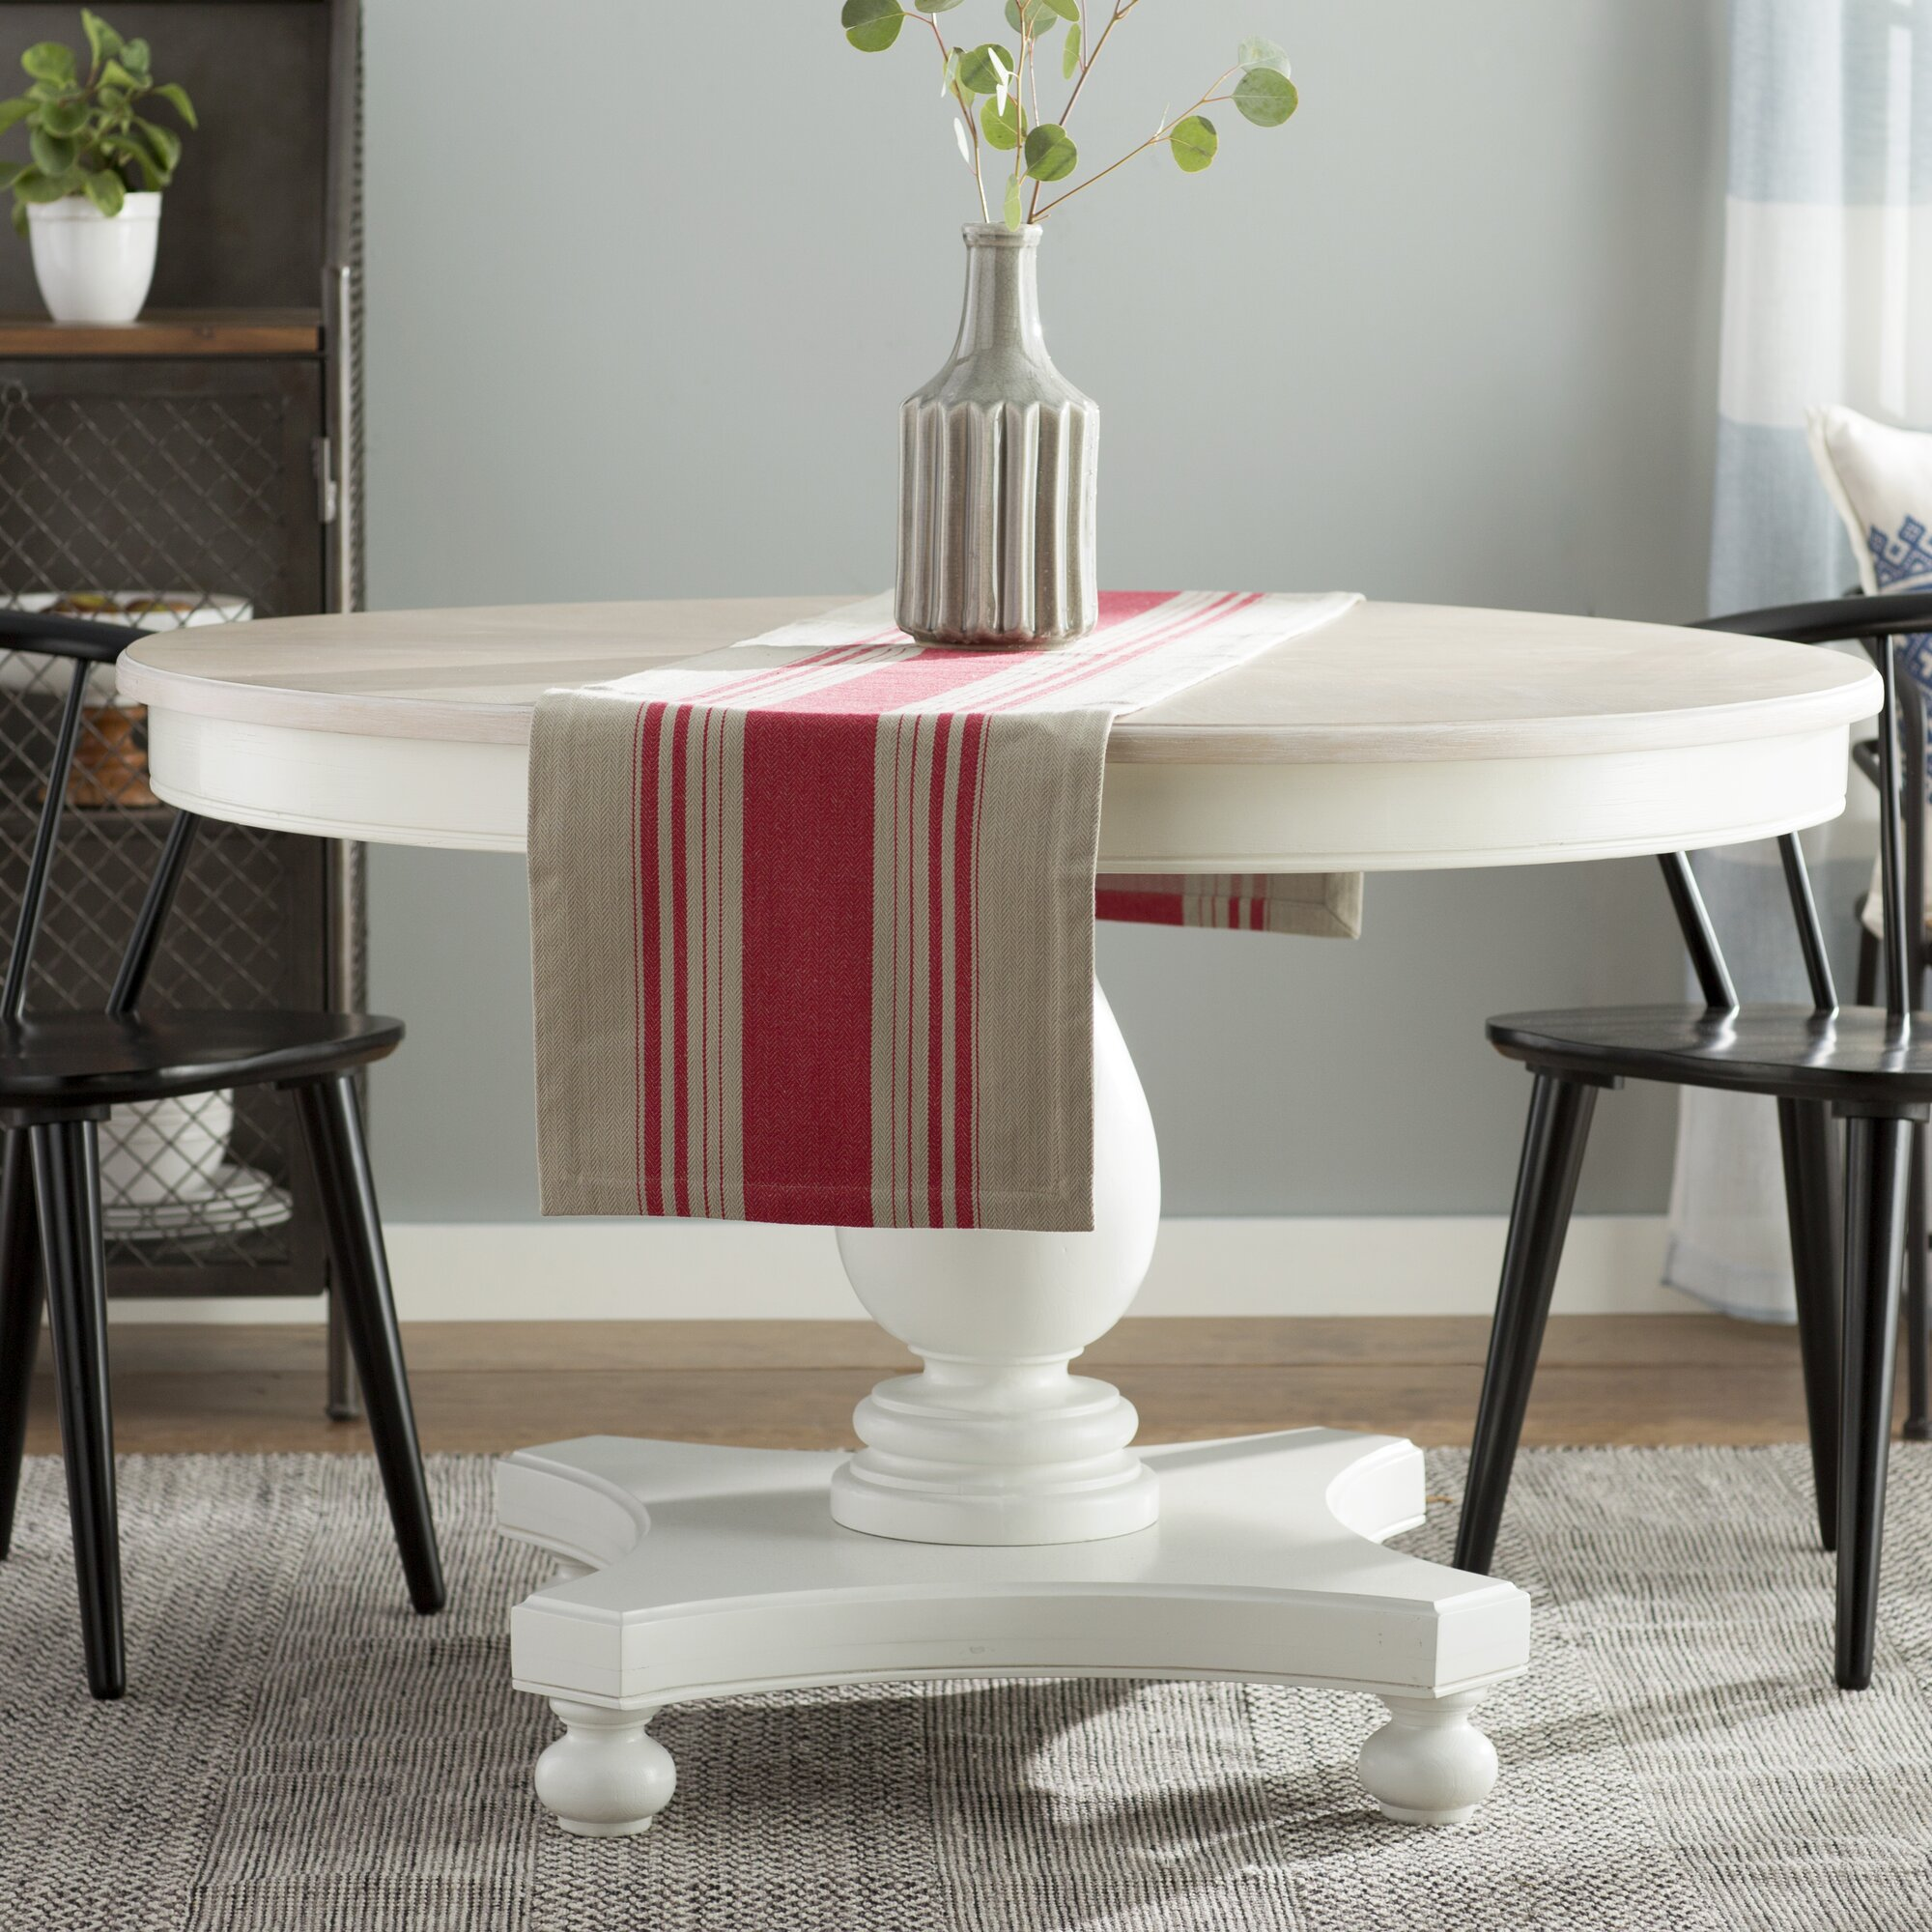 Laurel Foundry Modern Farmhouse Edyth Round Dining Table